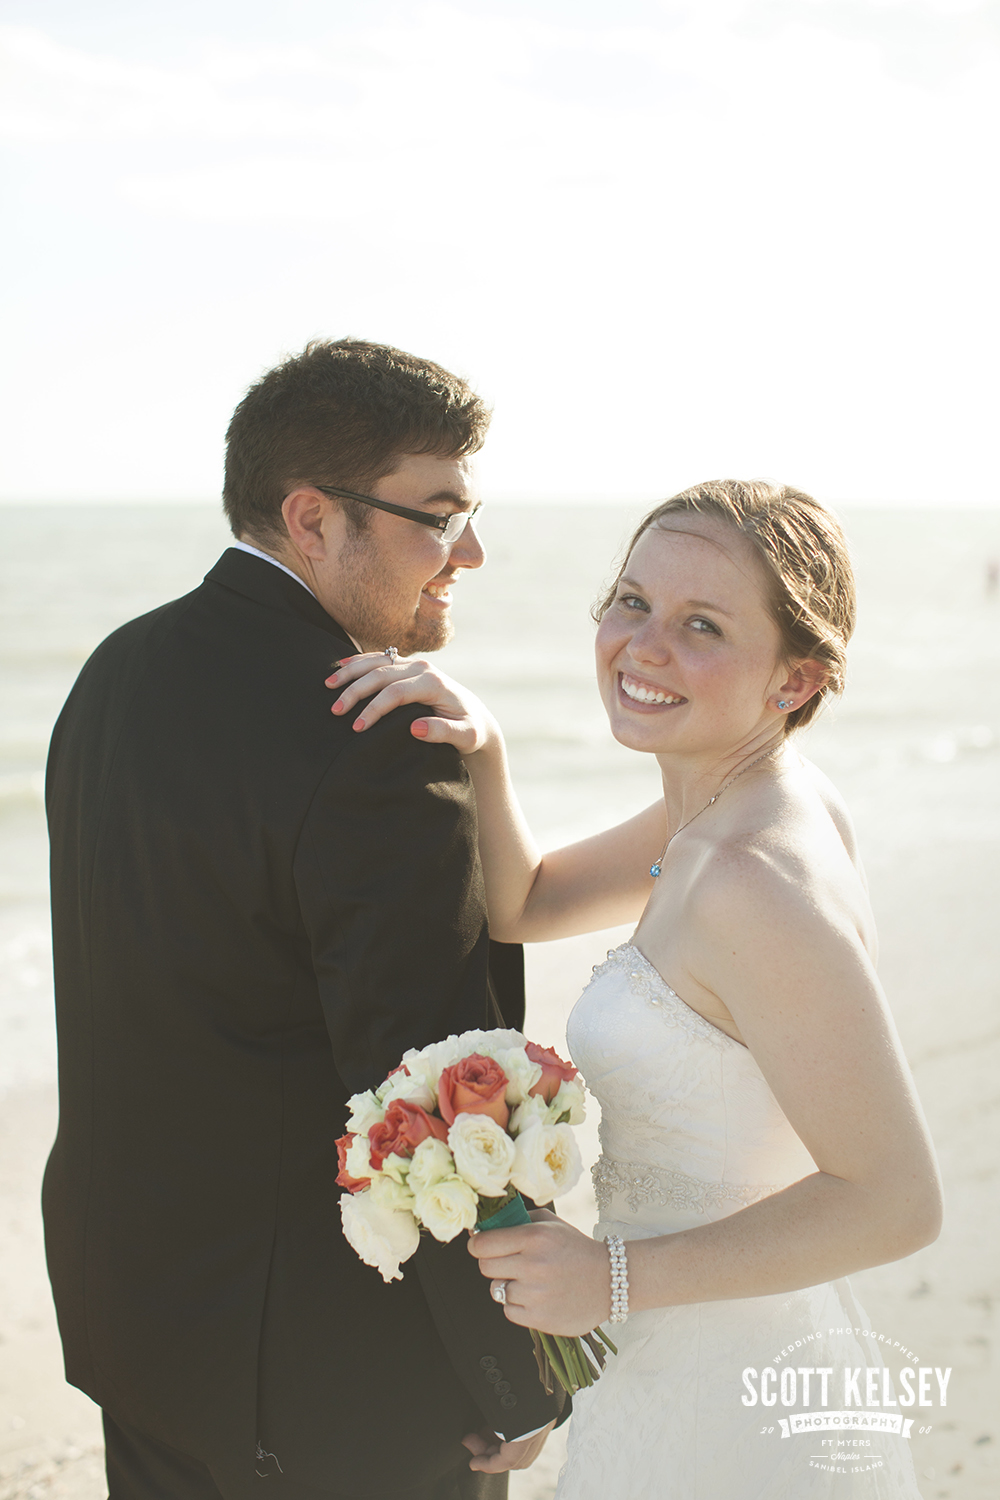 scott-kelsey-wedding-sanibel-island-inn-008